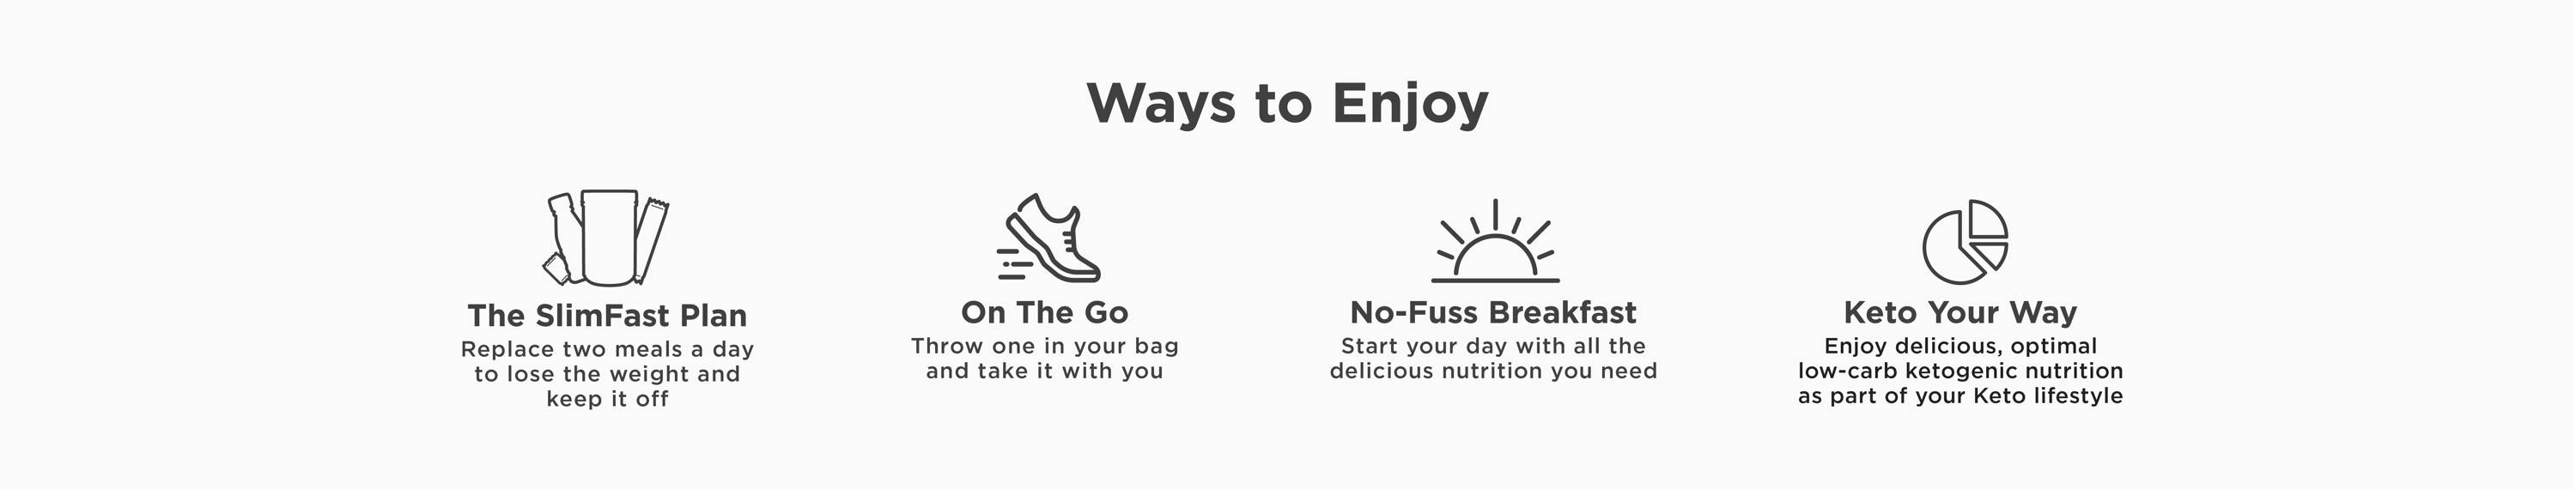 Ways to enjoy Keto Meal Bars: Use them on the SlimFast plan, take them on the go, have a no-fuss breakfast, or do keto your way